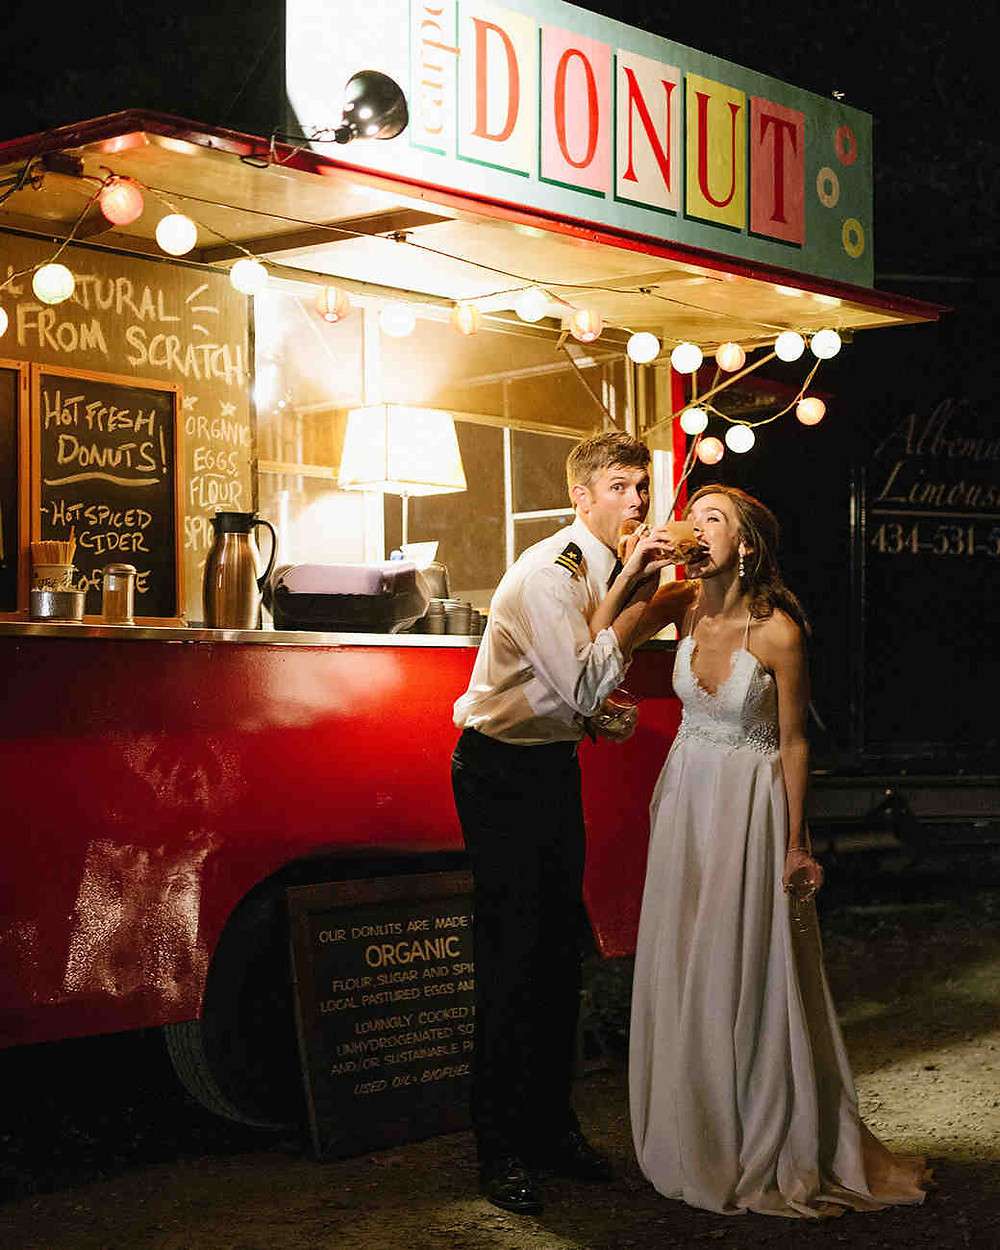 Donut truck at wedding